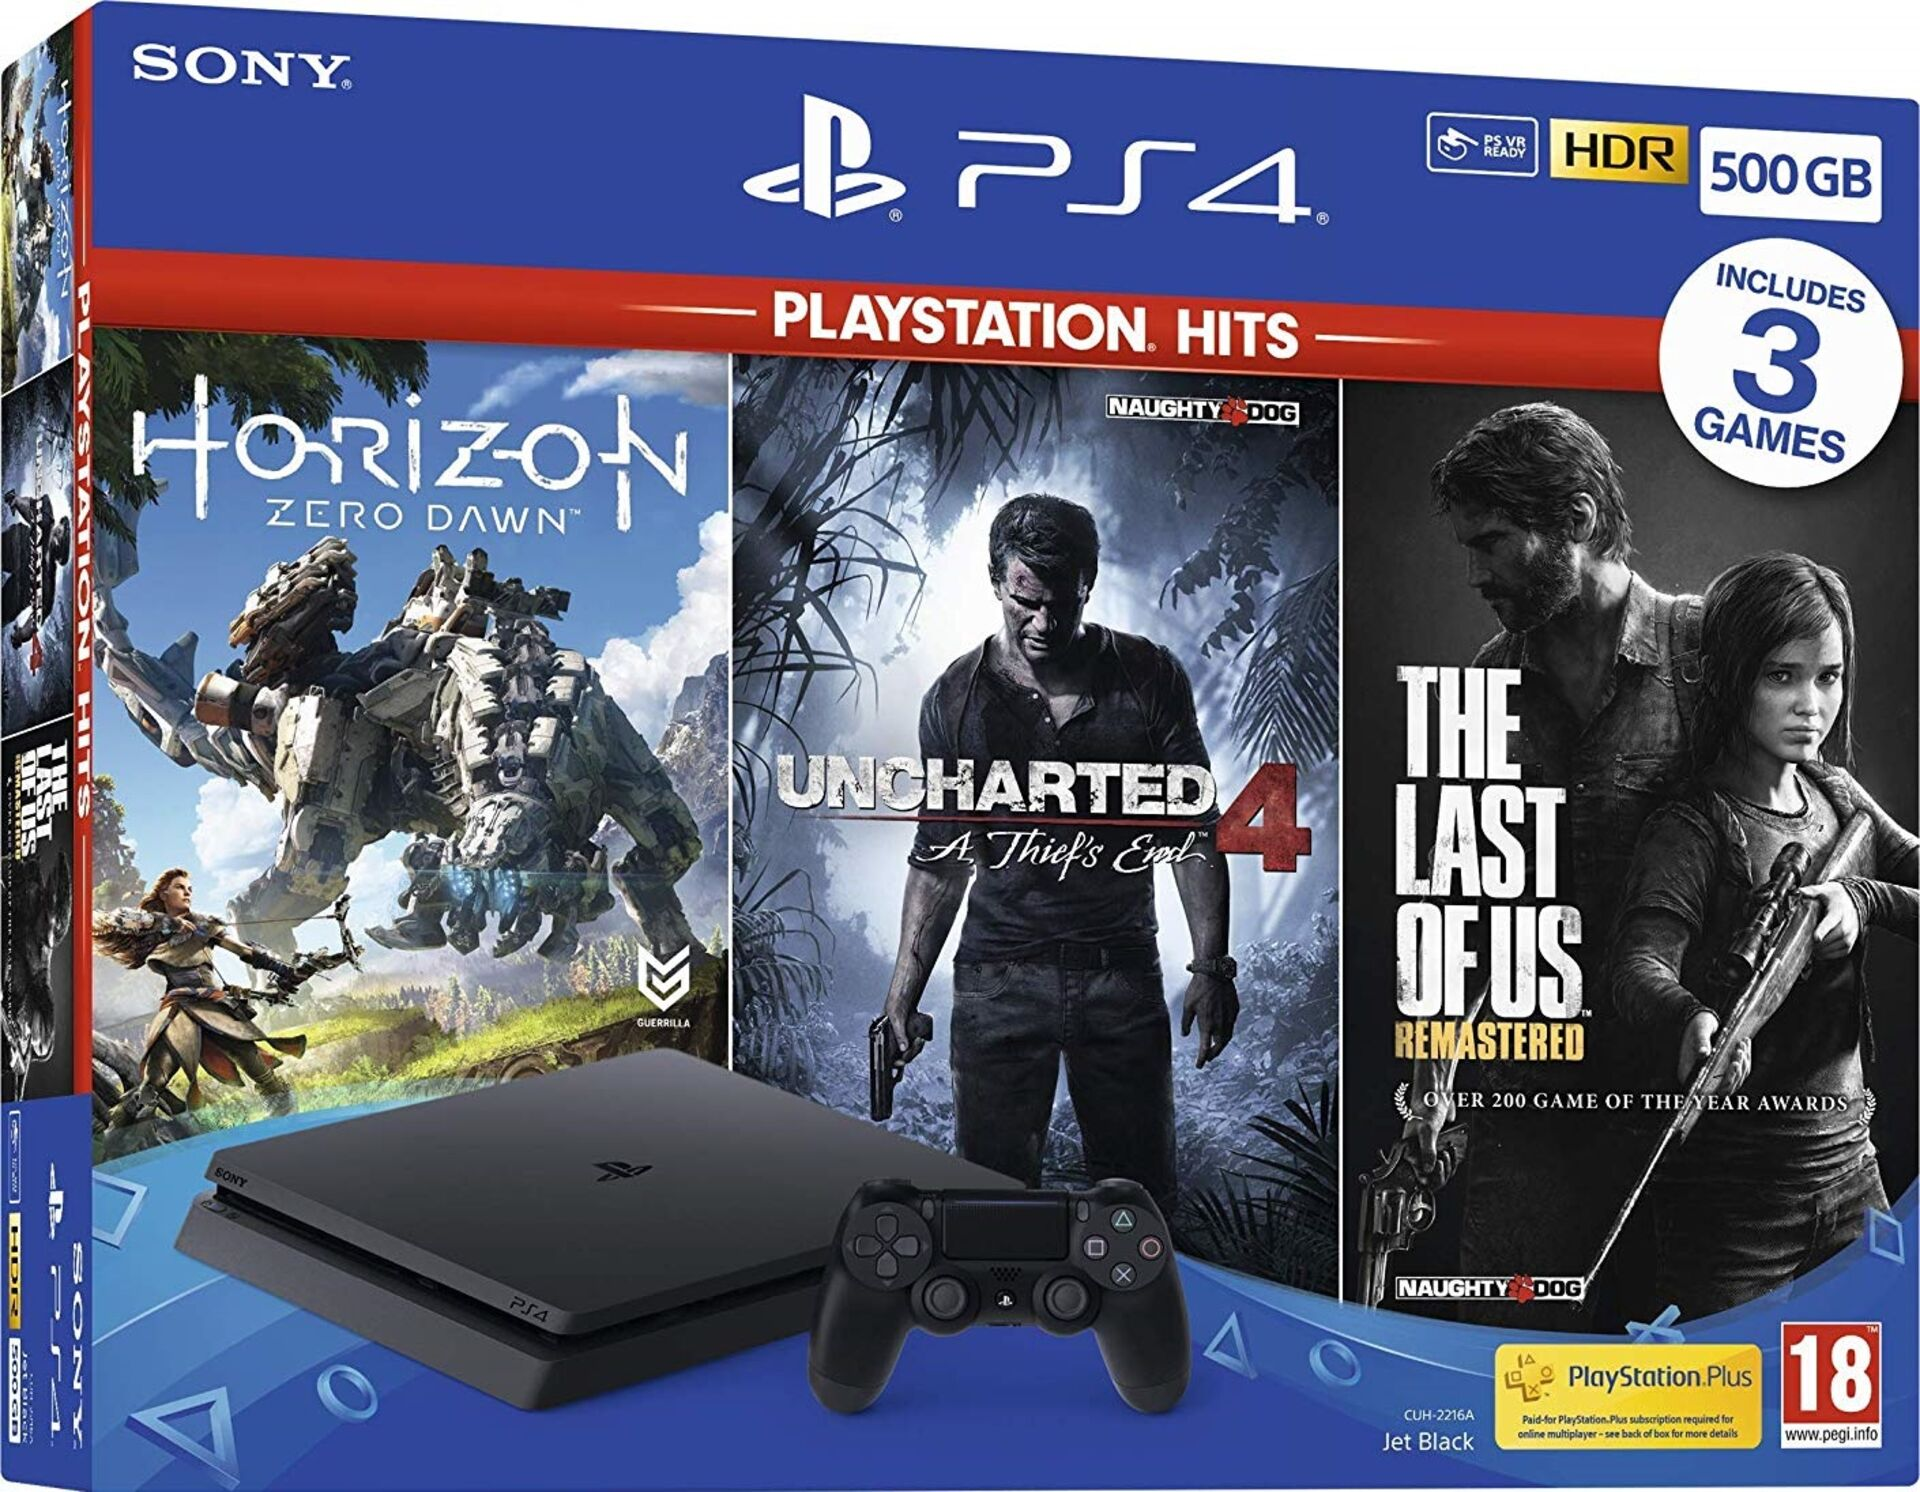 A Ps4 With Horizon Zero Dawn Uncharted 4 And The Last Of Us Is